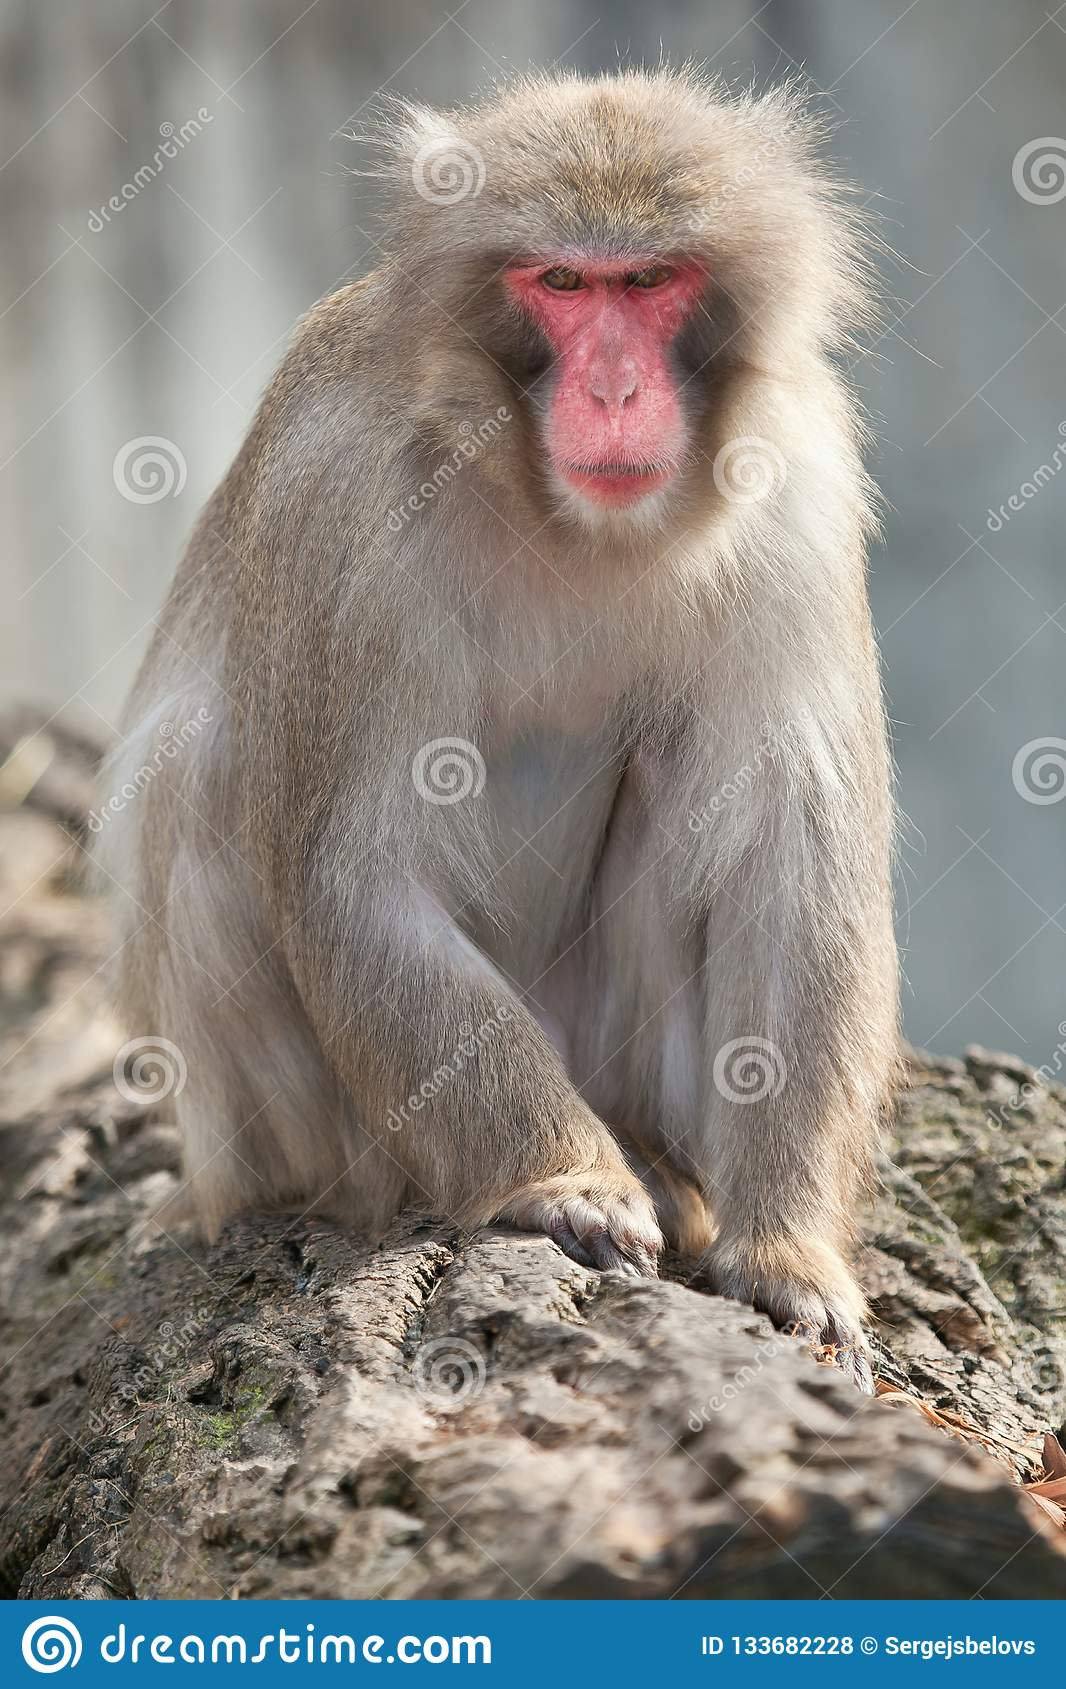 A snow monkey Japanese Macaque cuddling her baby near a warm spring